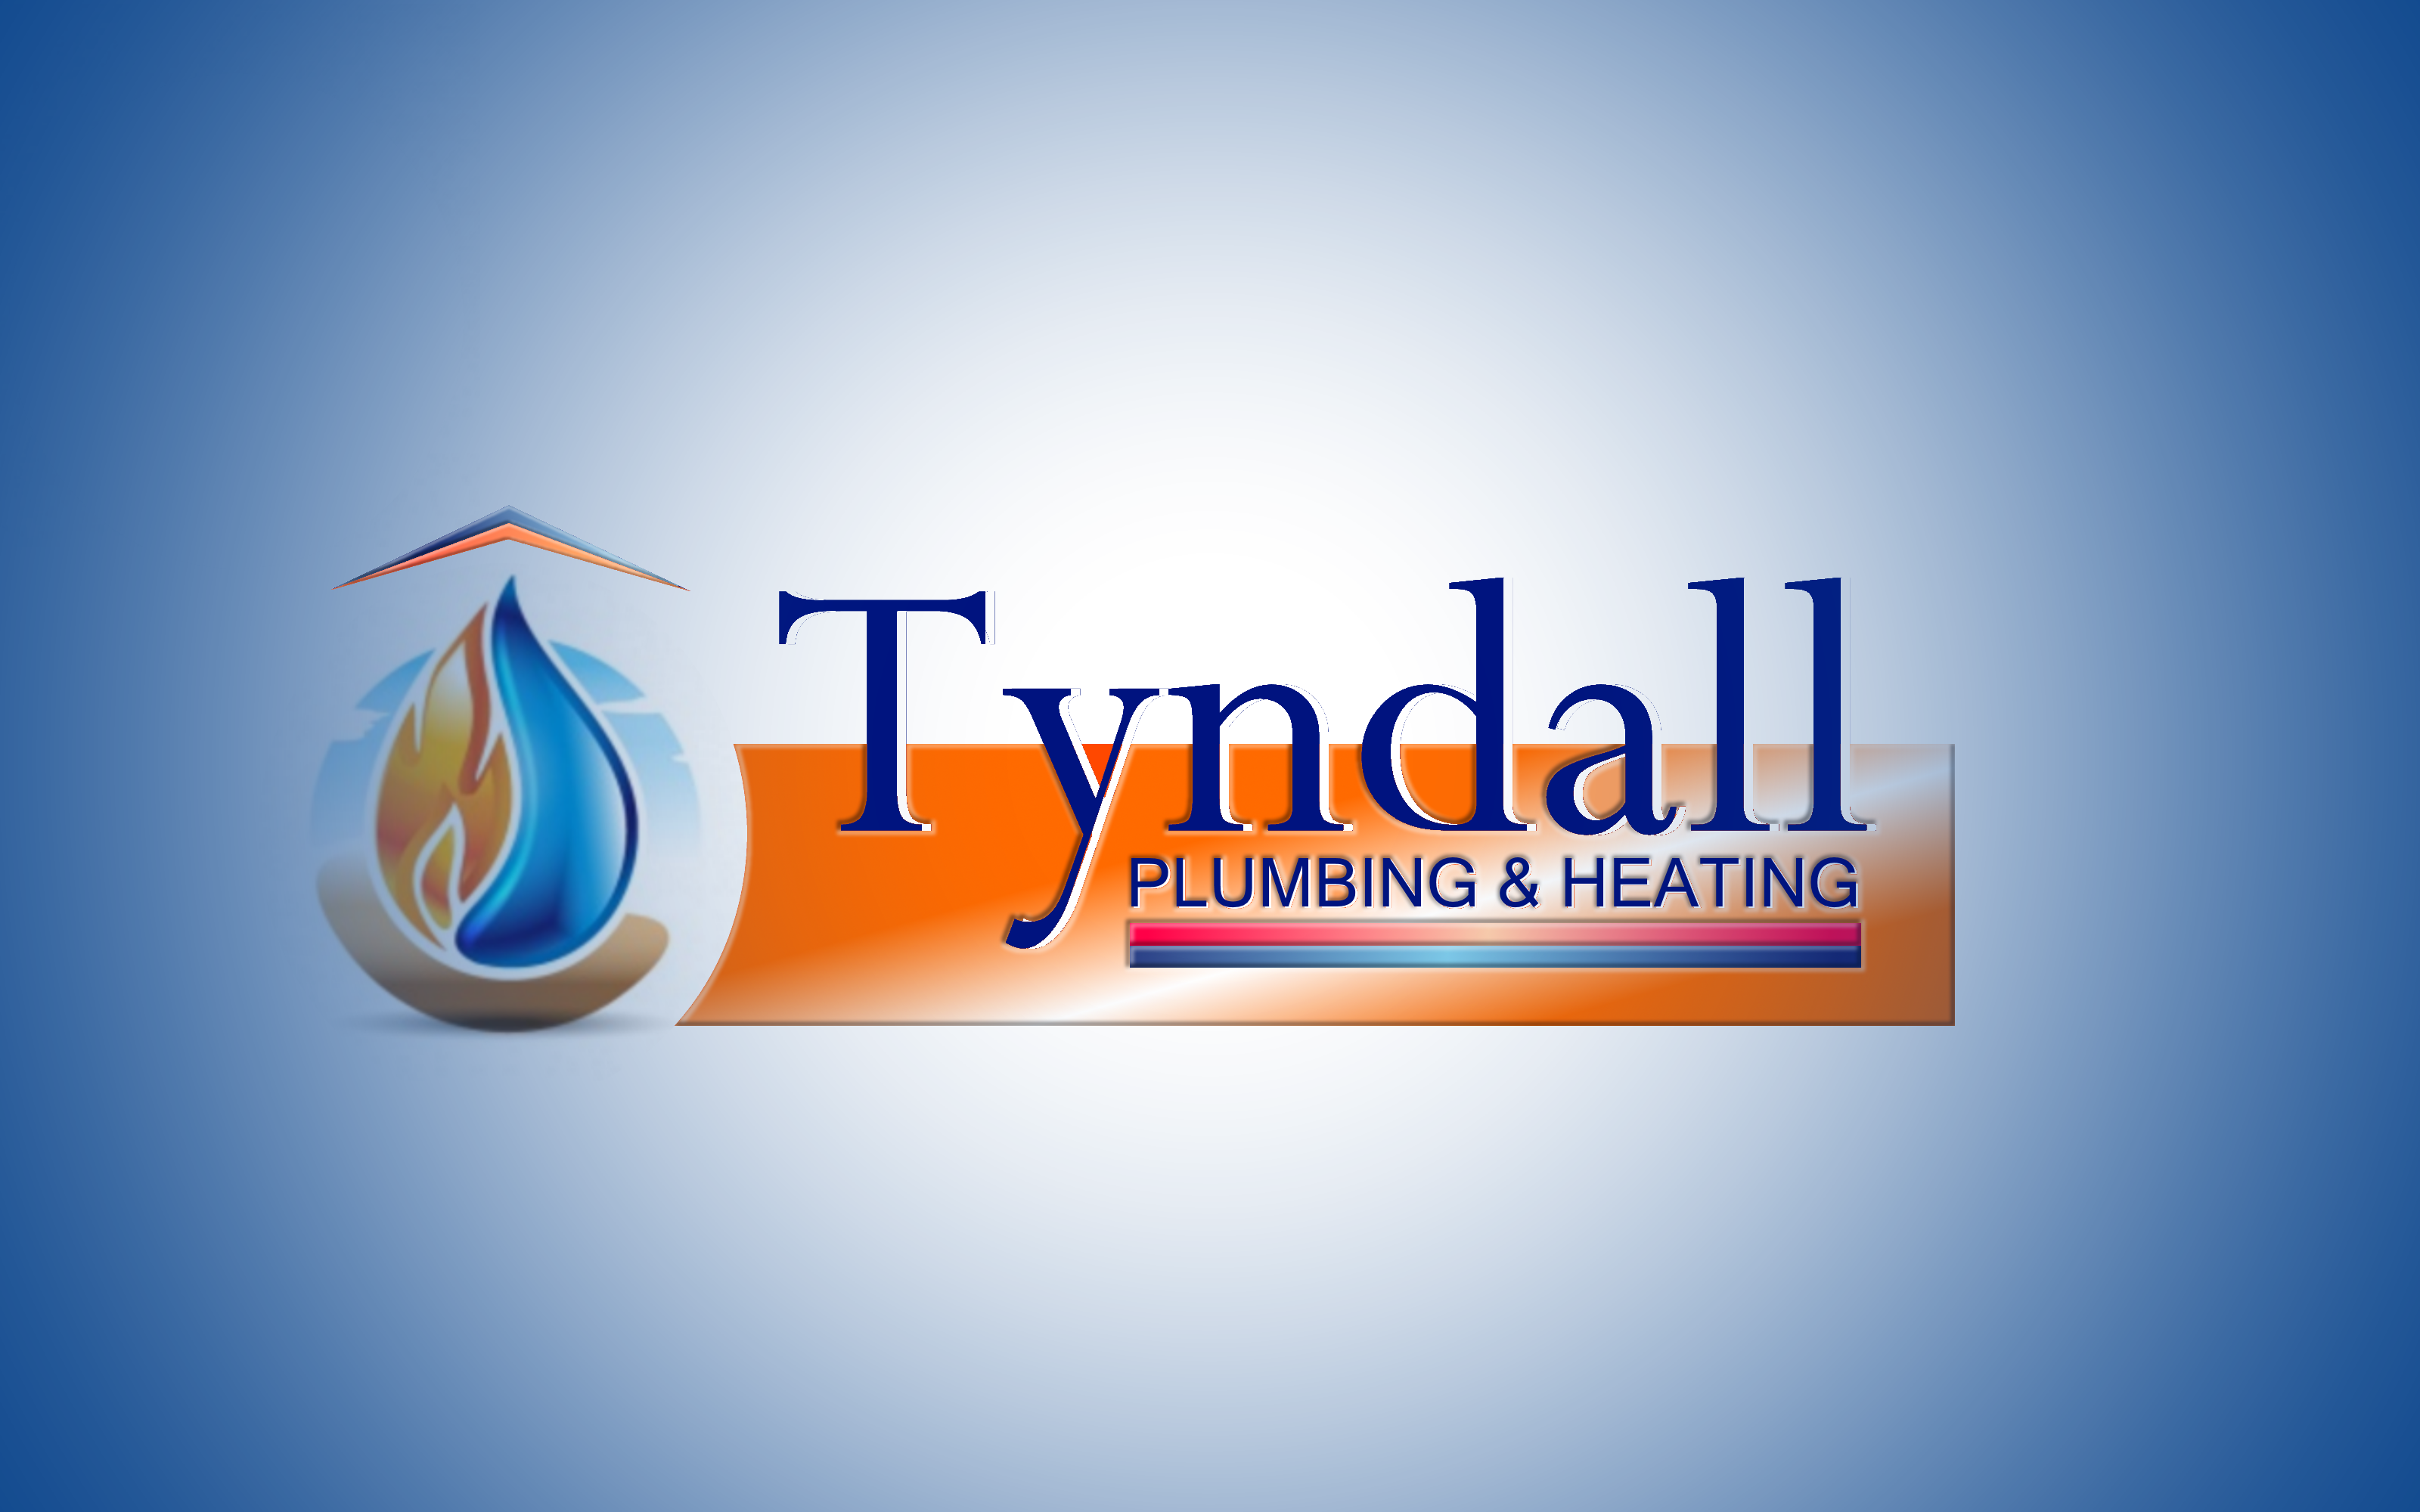 Logo Design by Roberto Bassi - Entry No. 28 in the Logo Design Contest Imaginative Logo Design for Tyndall Plumbing & Heating.